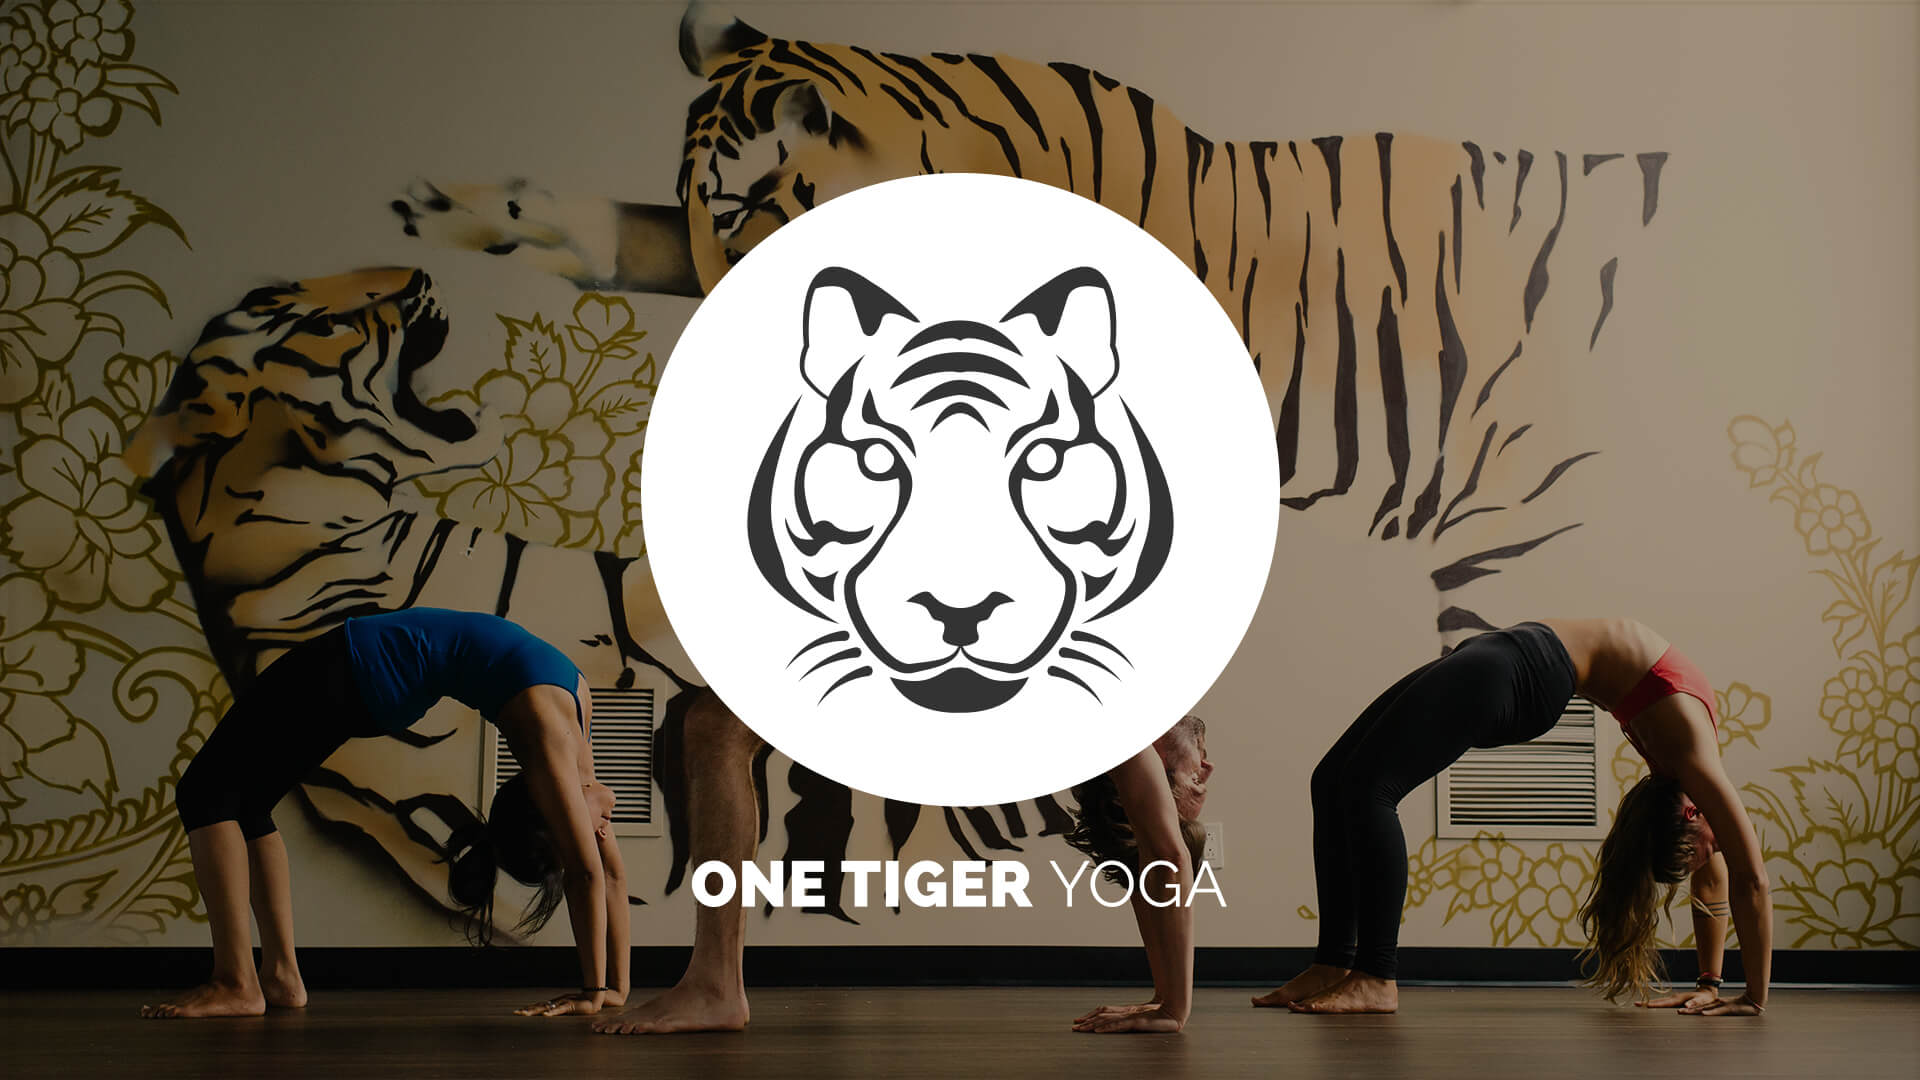 One Tiger Yoga